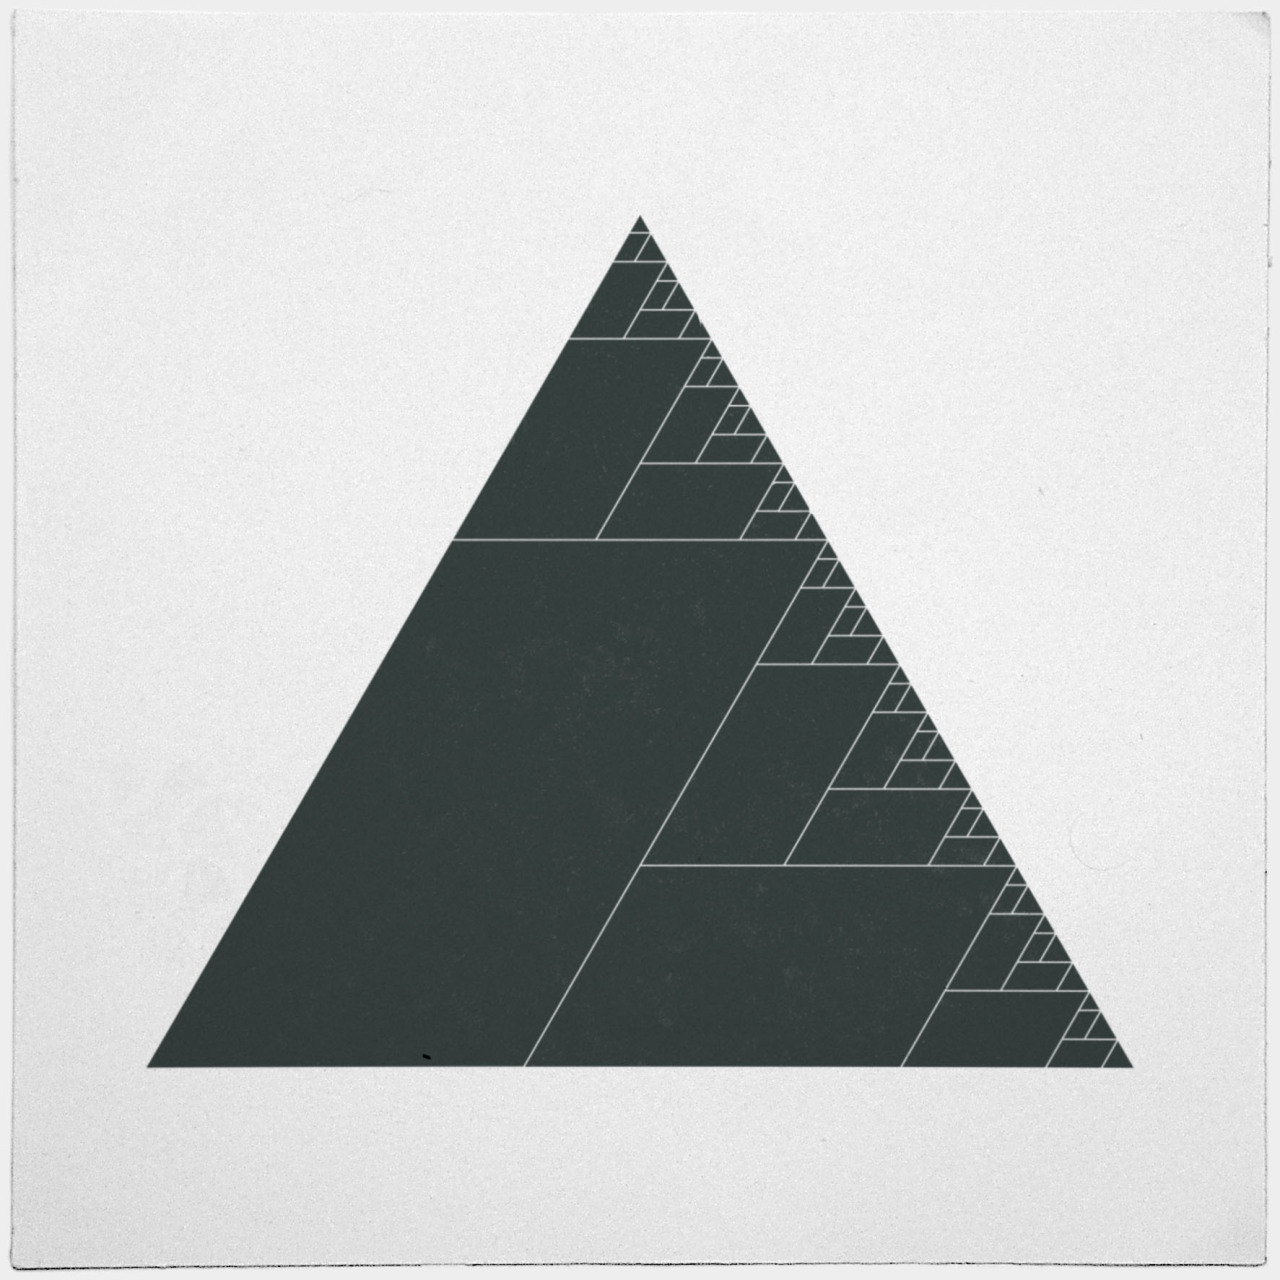 geometrydaily:  #399 Ashes of the triangle – A new minimal geometric composition each day